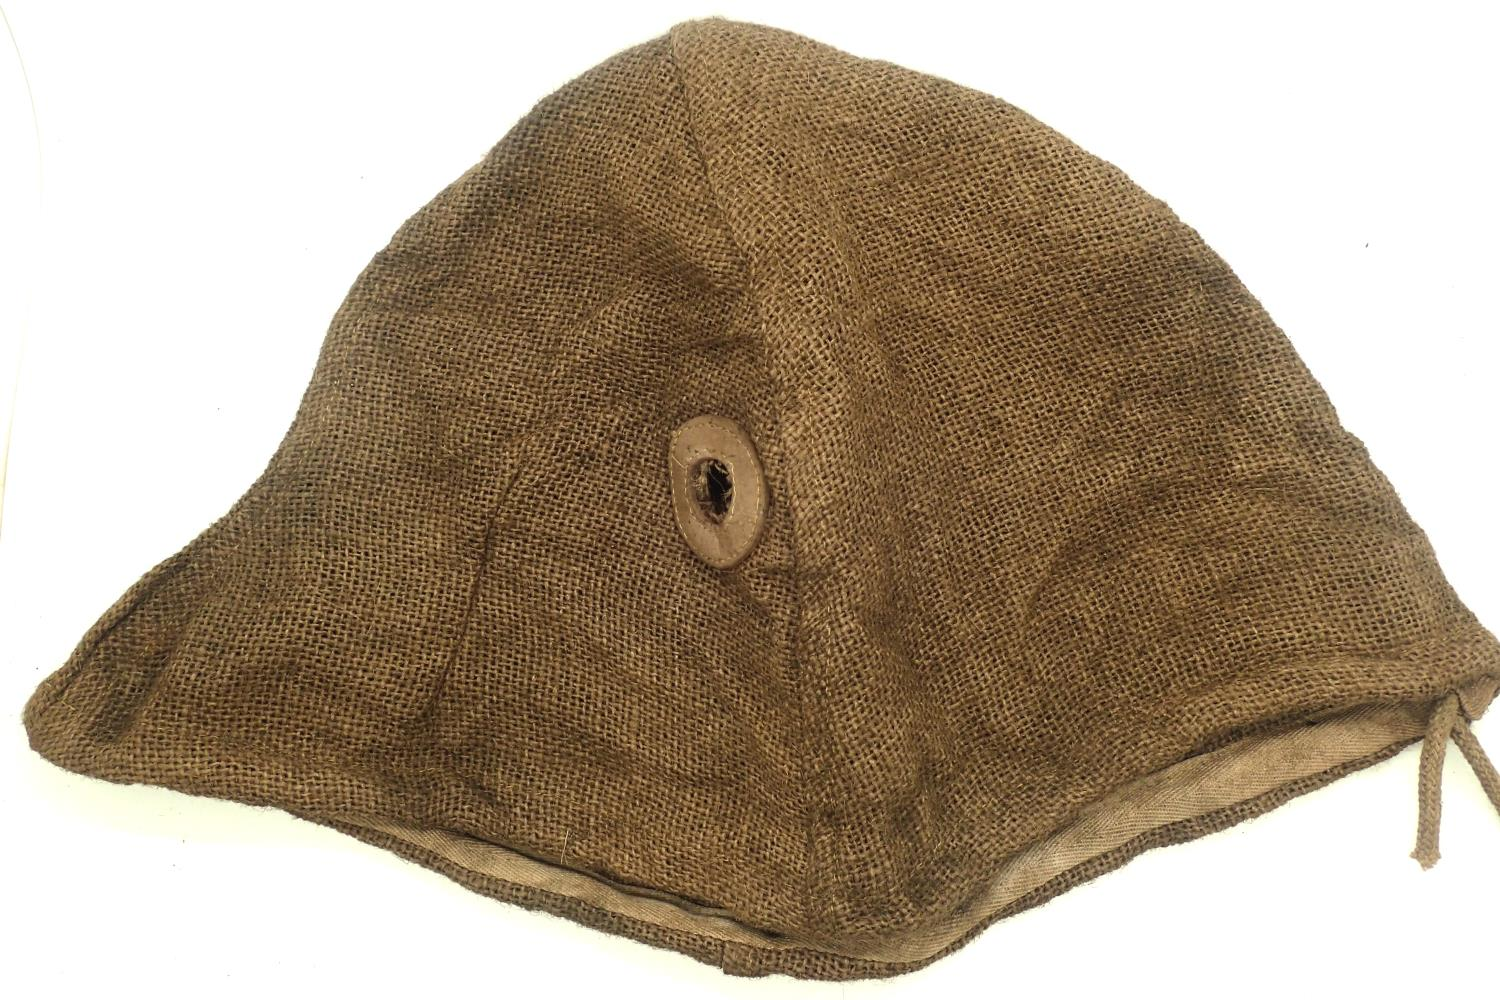 WWI Imperial War M16 Stalhelm hessian helmet cover. P&P Group 1 (£14+VAT for the first lot and £1+